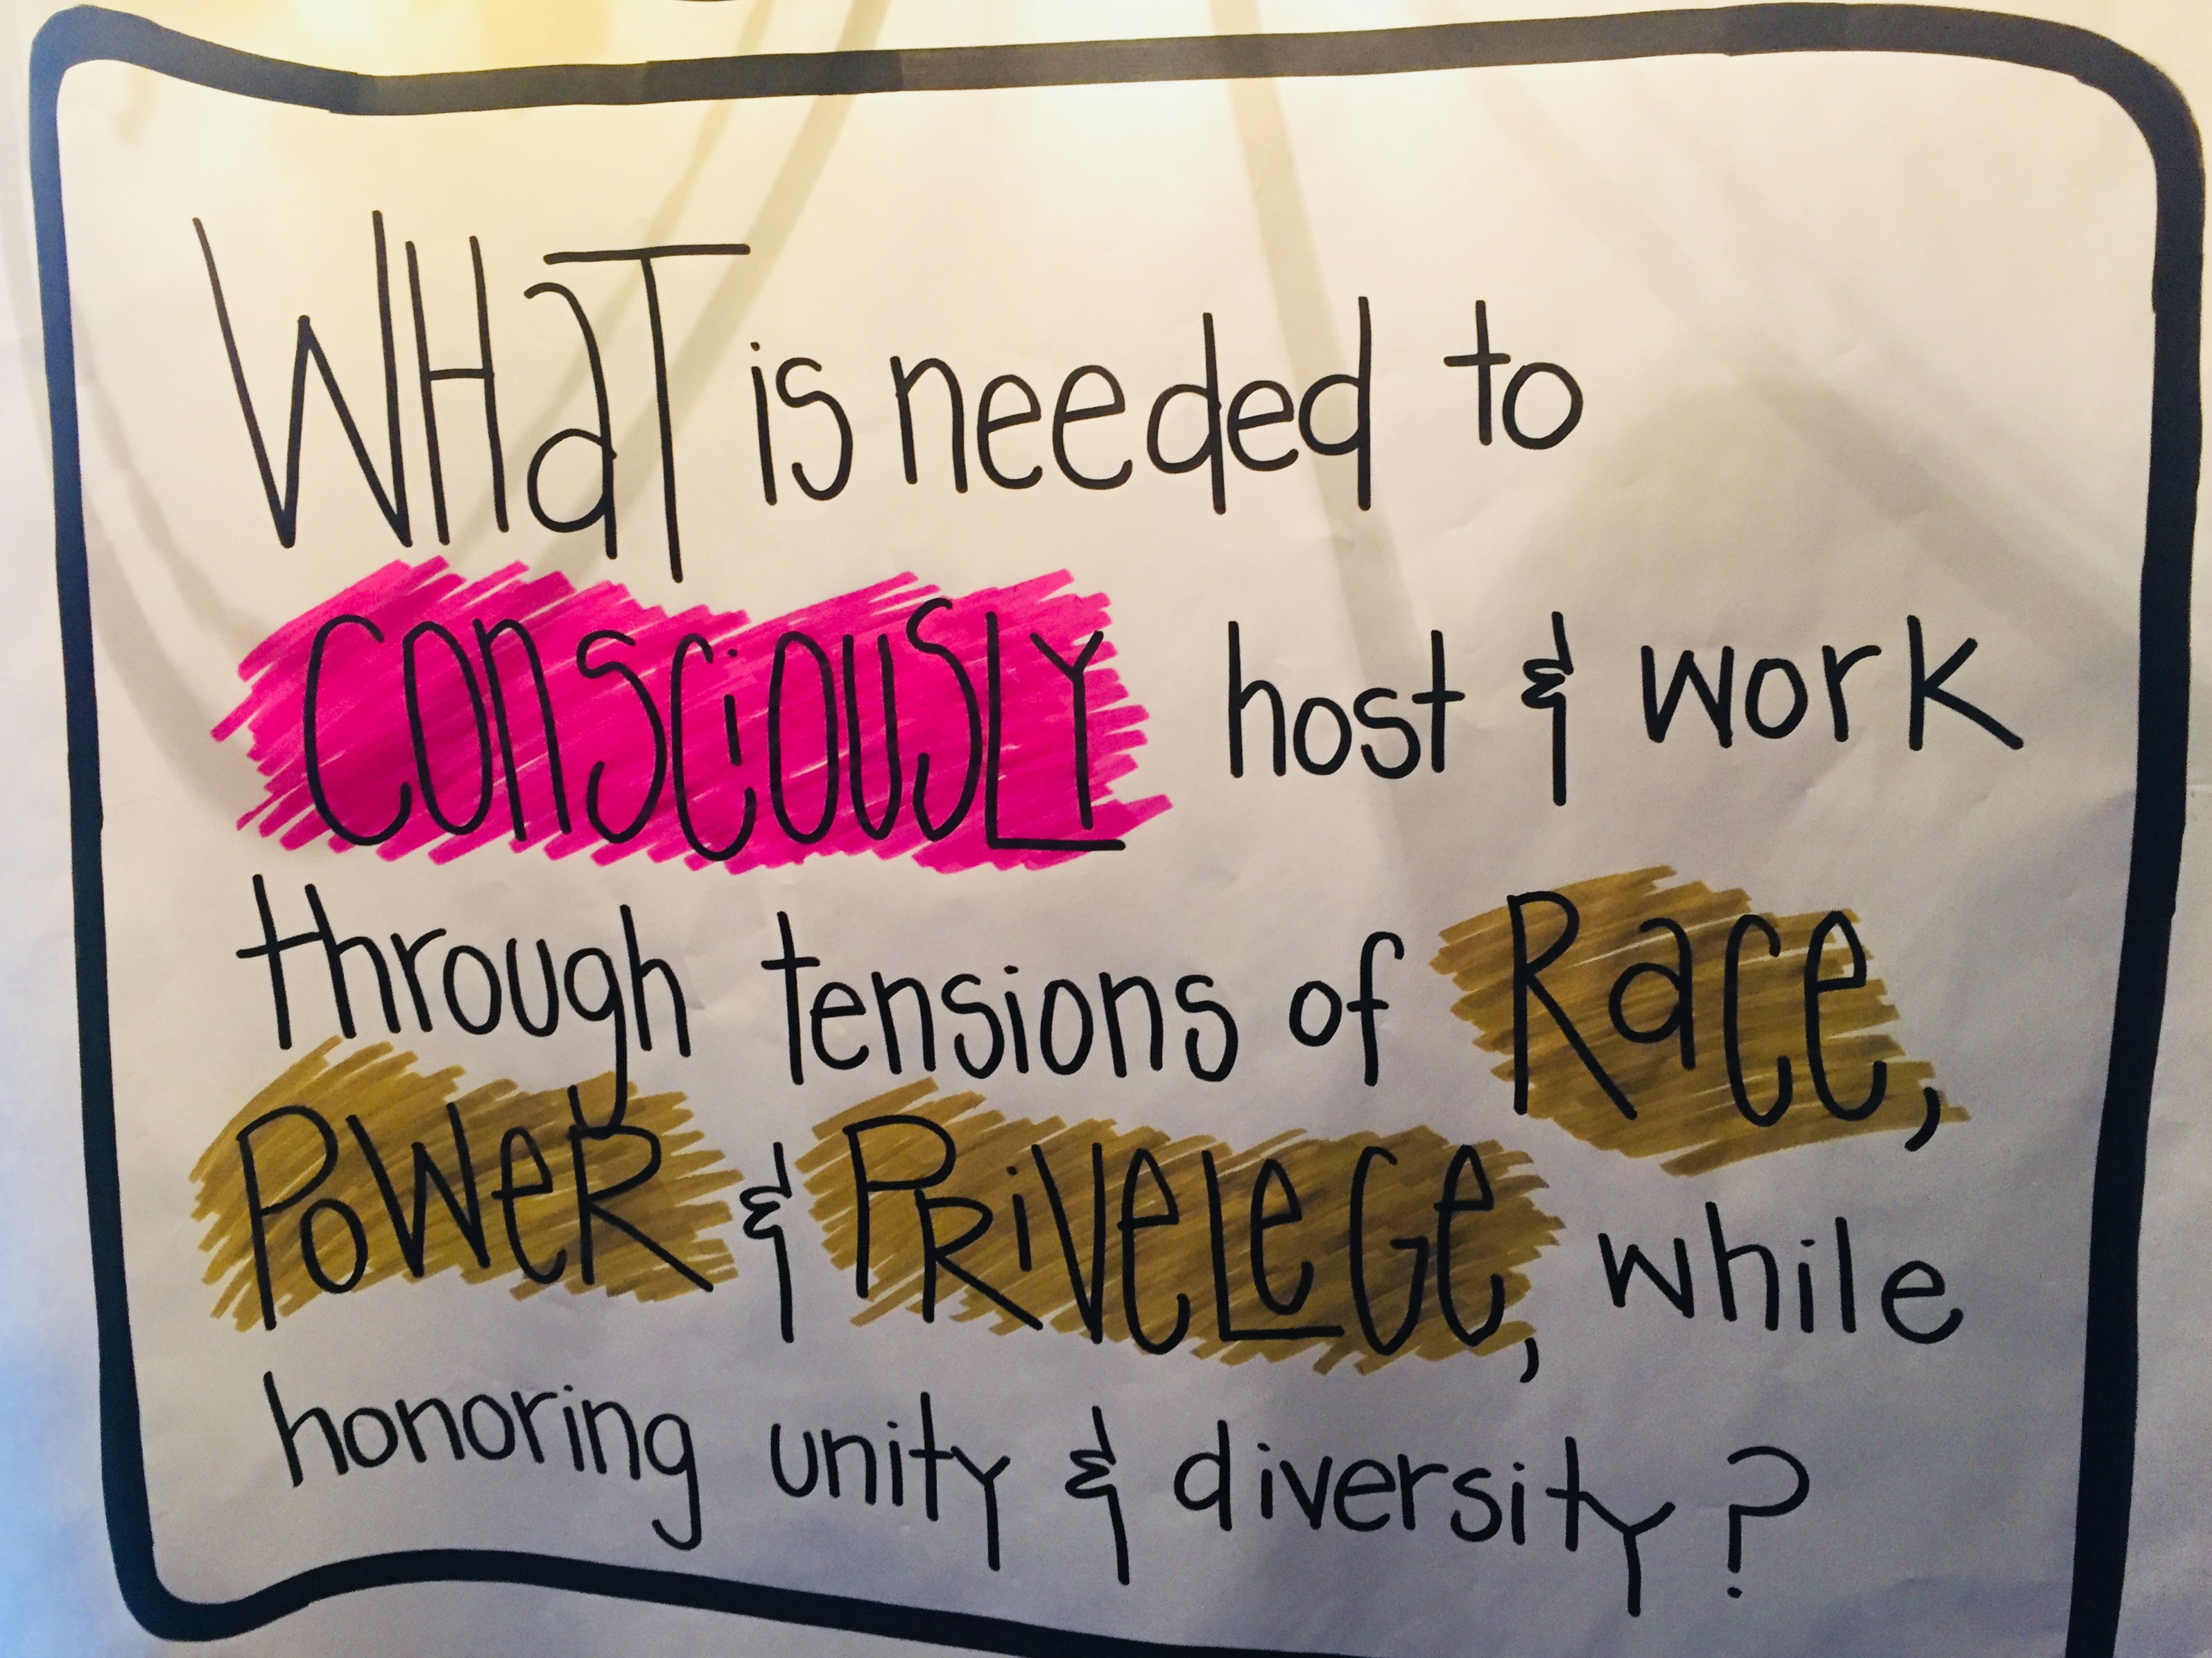 What is needed to consciously host and work through tensions of race, power and privilege while honoring unity and diversity?